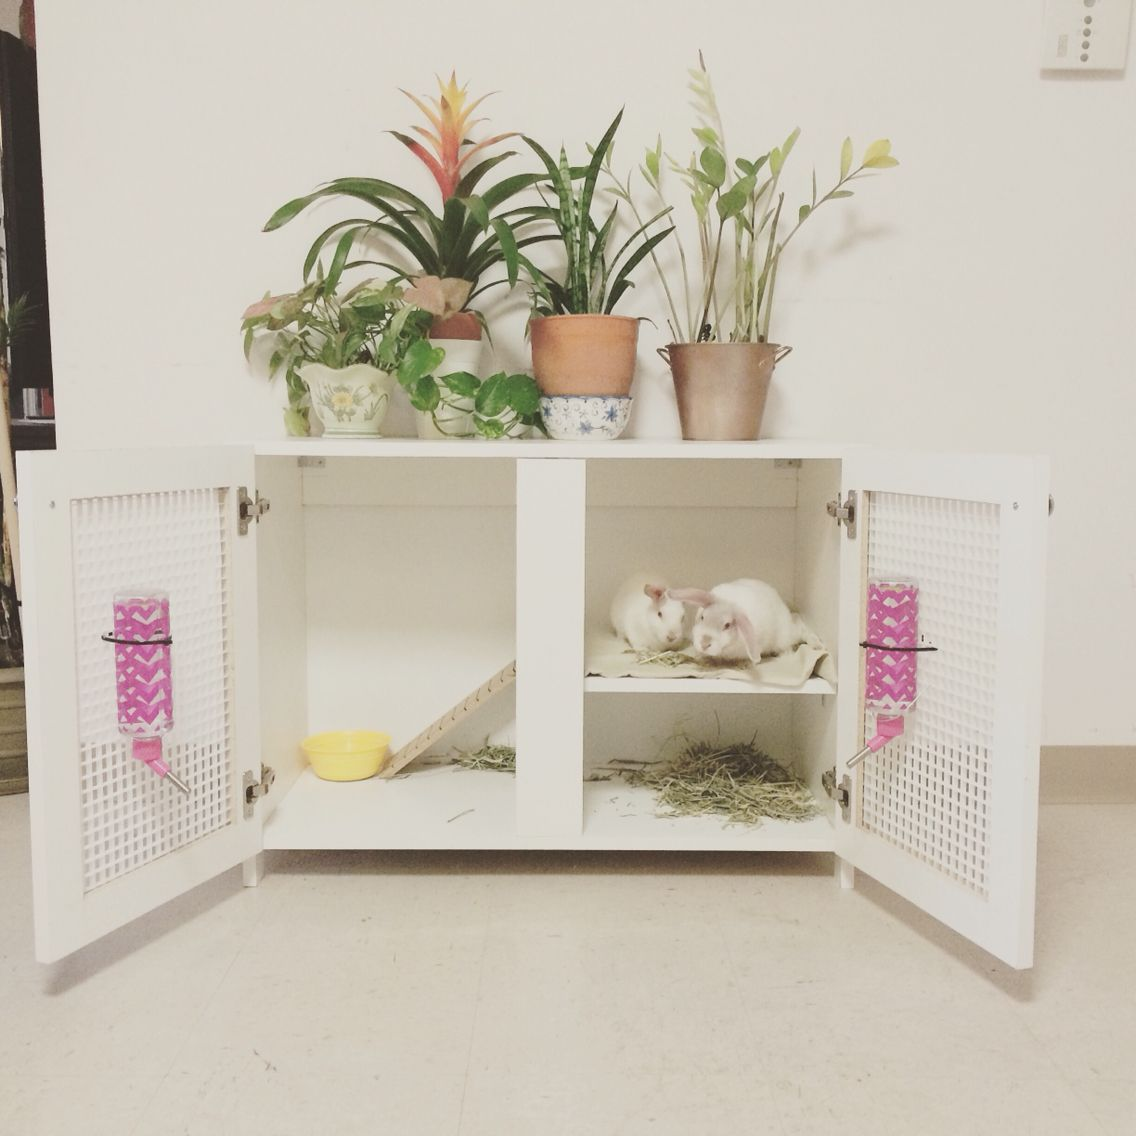 Diy Cage For Rabbit 1000 43 Ideas About Indoor Rabbit On Pinterest Rabbit